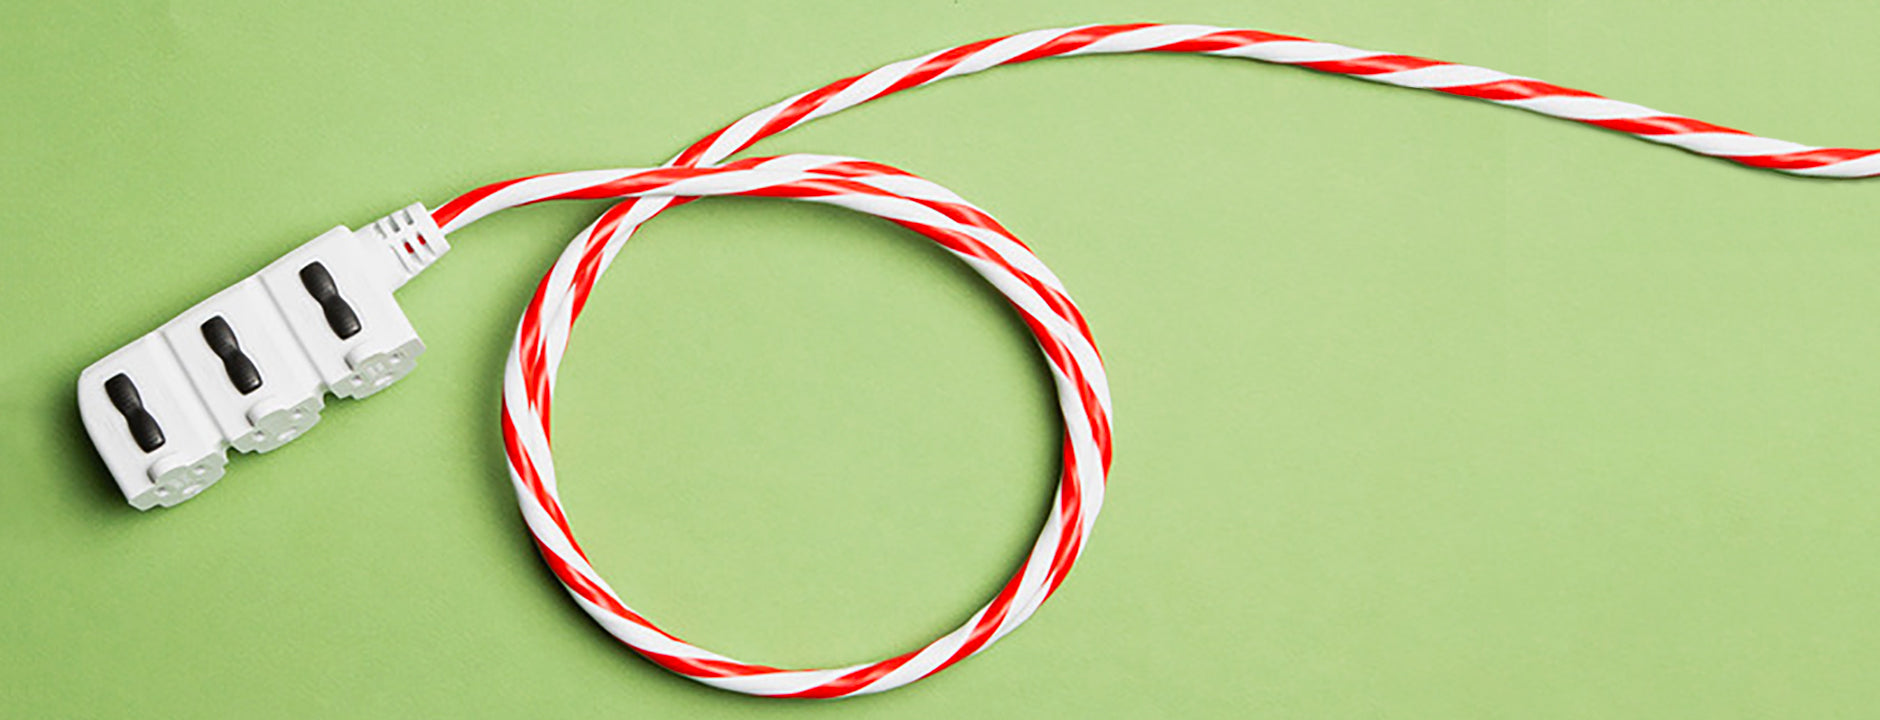 christmas lights extension cord